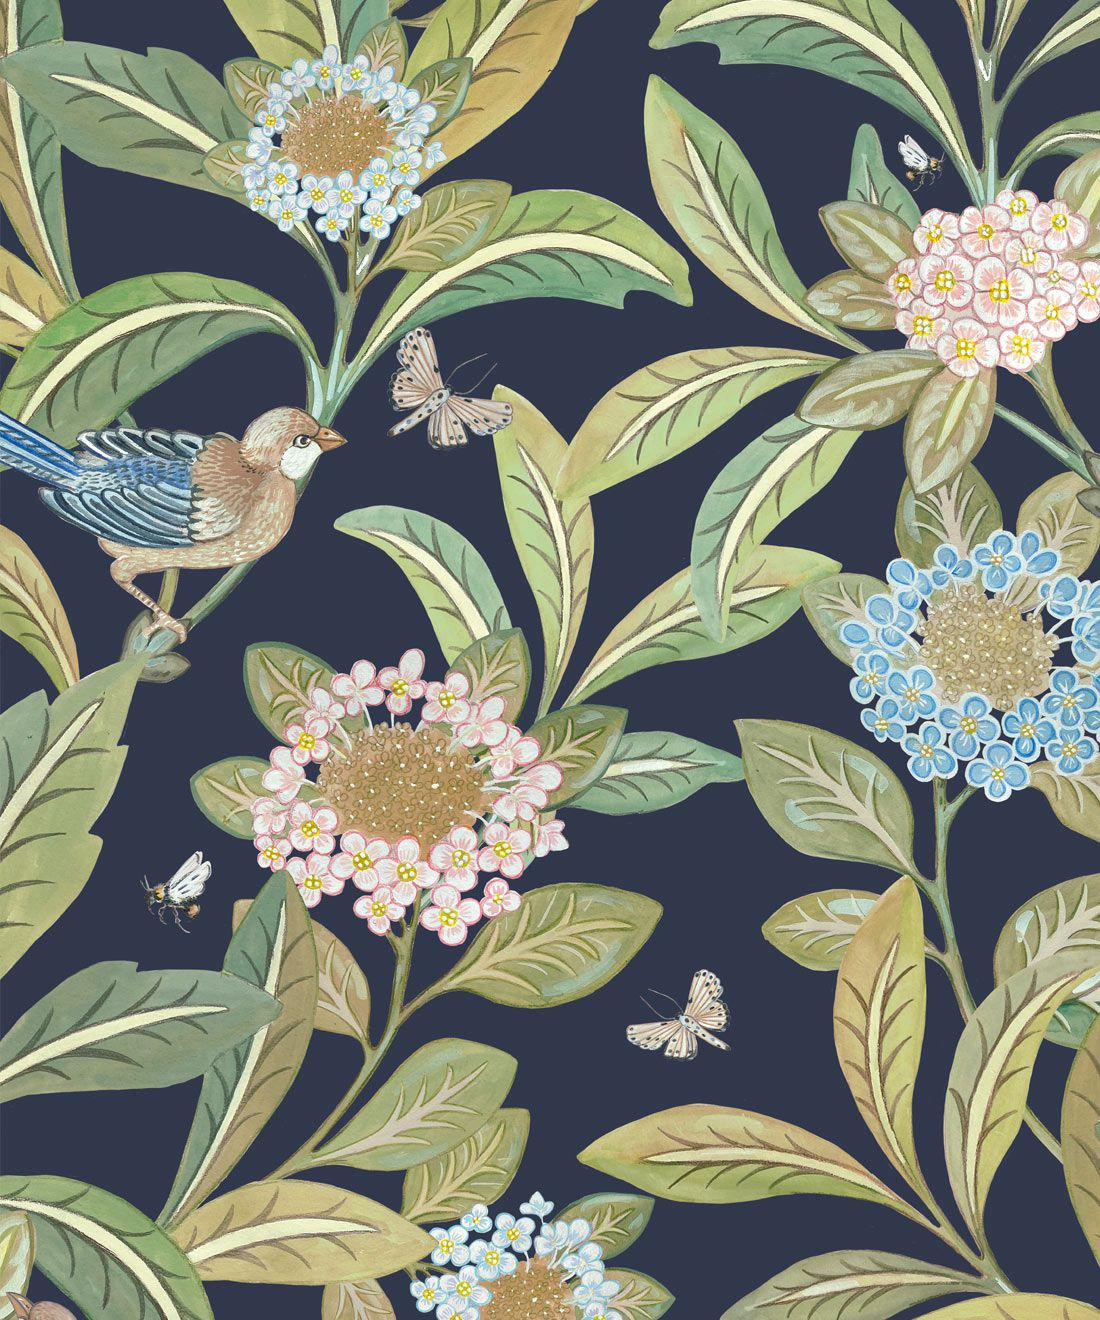 Summer Garden Wallpaper • Navy Wallpaper • Floral Wallpaper Swatch